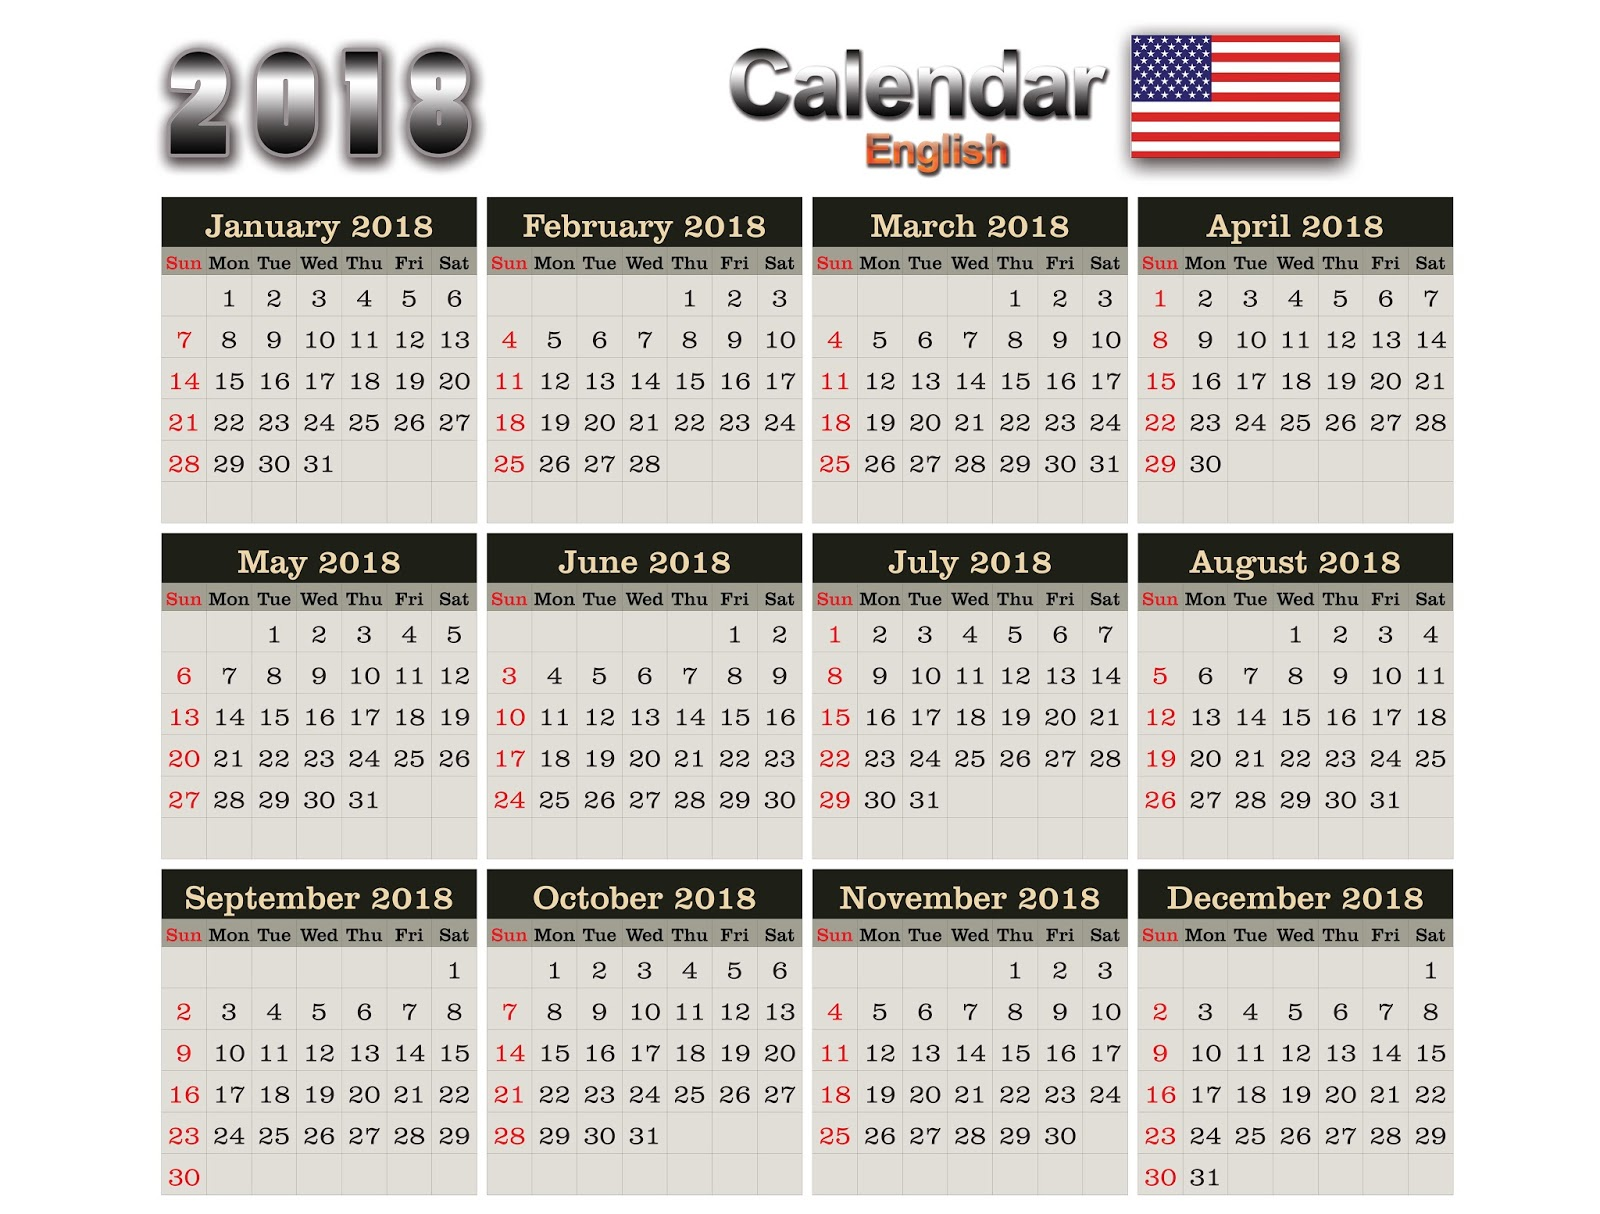 Calendar English : Calendars english eps ai cdr psd png e pdf